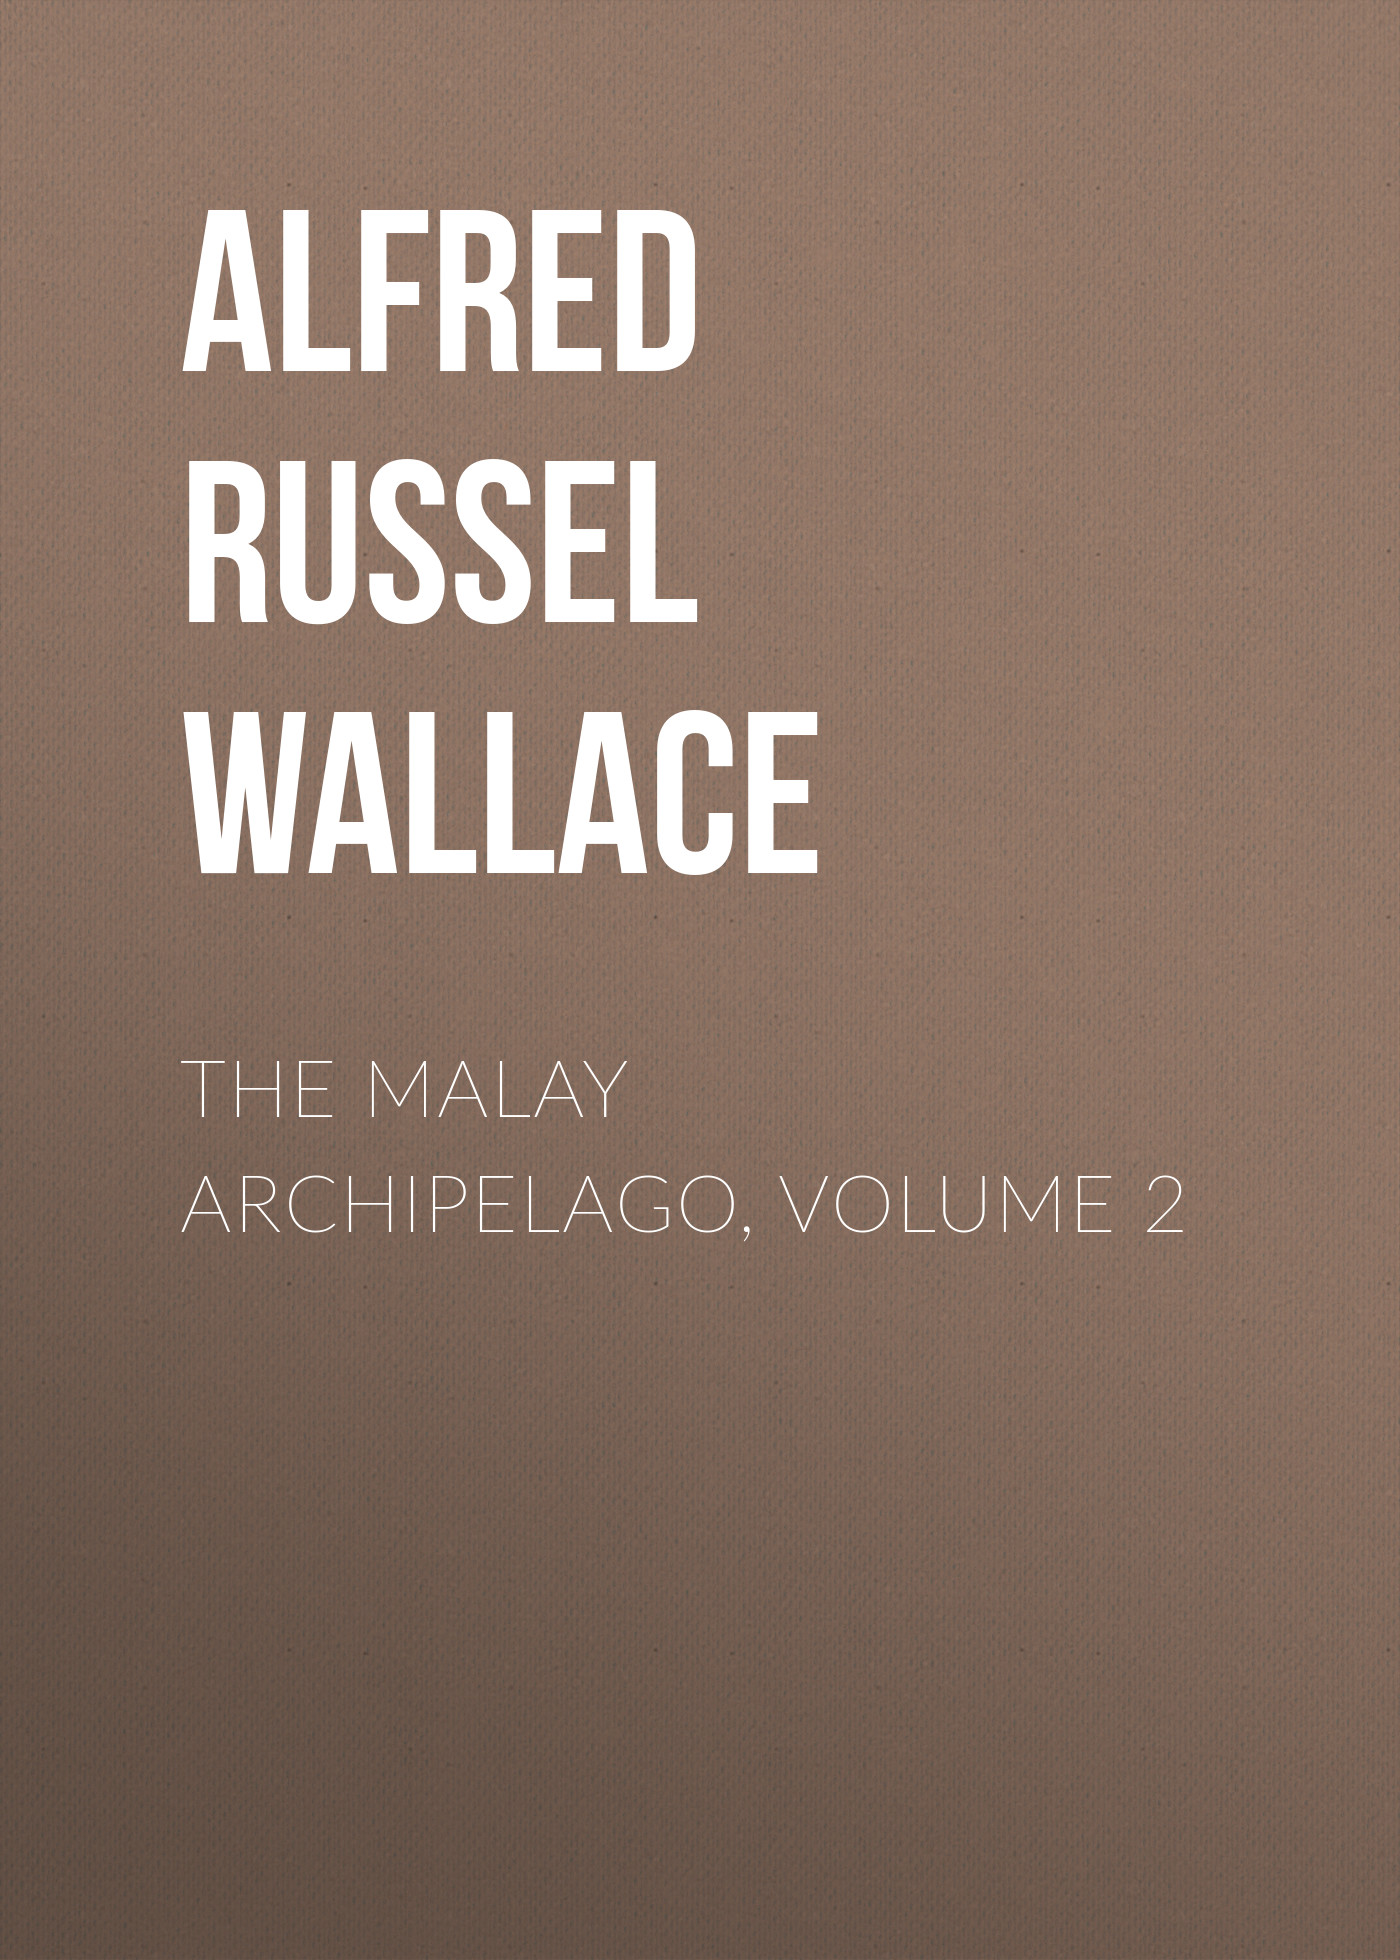 Alfred Russel Wallace The Malay Archipelago, Volume 2 modernization and the malay matrimonial foodways